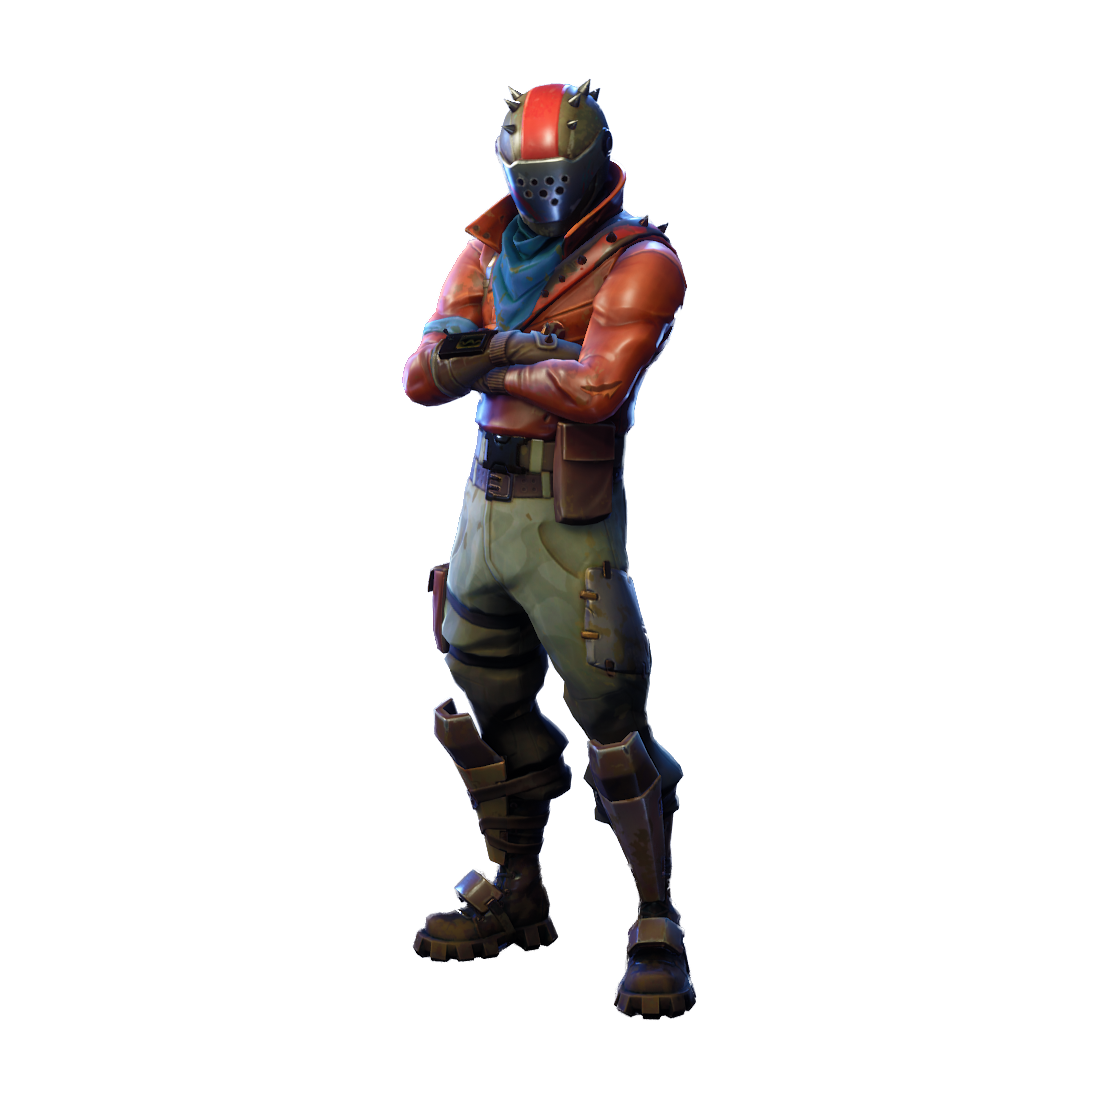 Rust lord pinterest. Fortnite raven skin png clip library stock